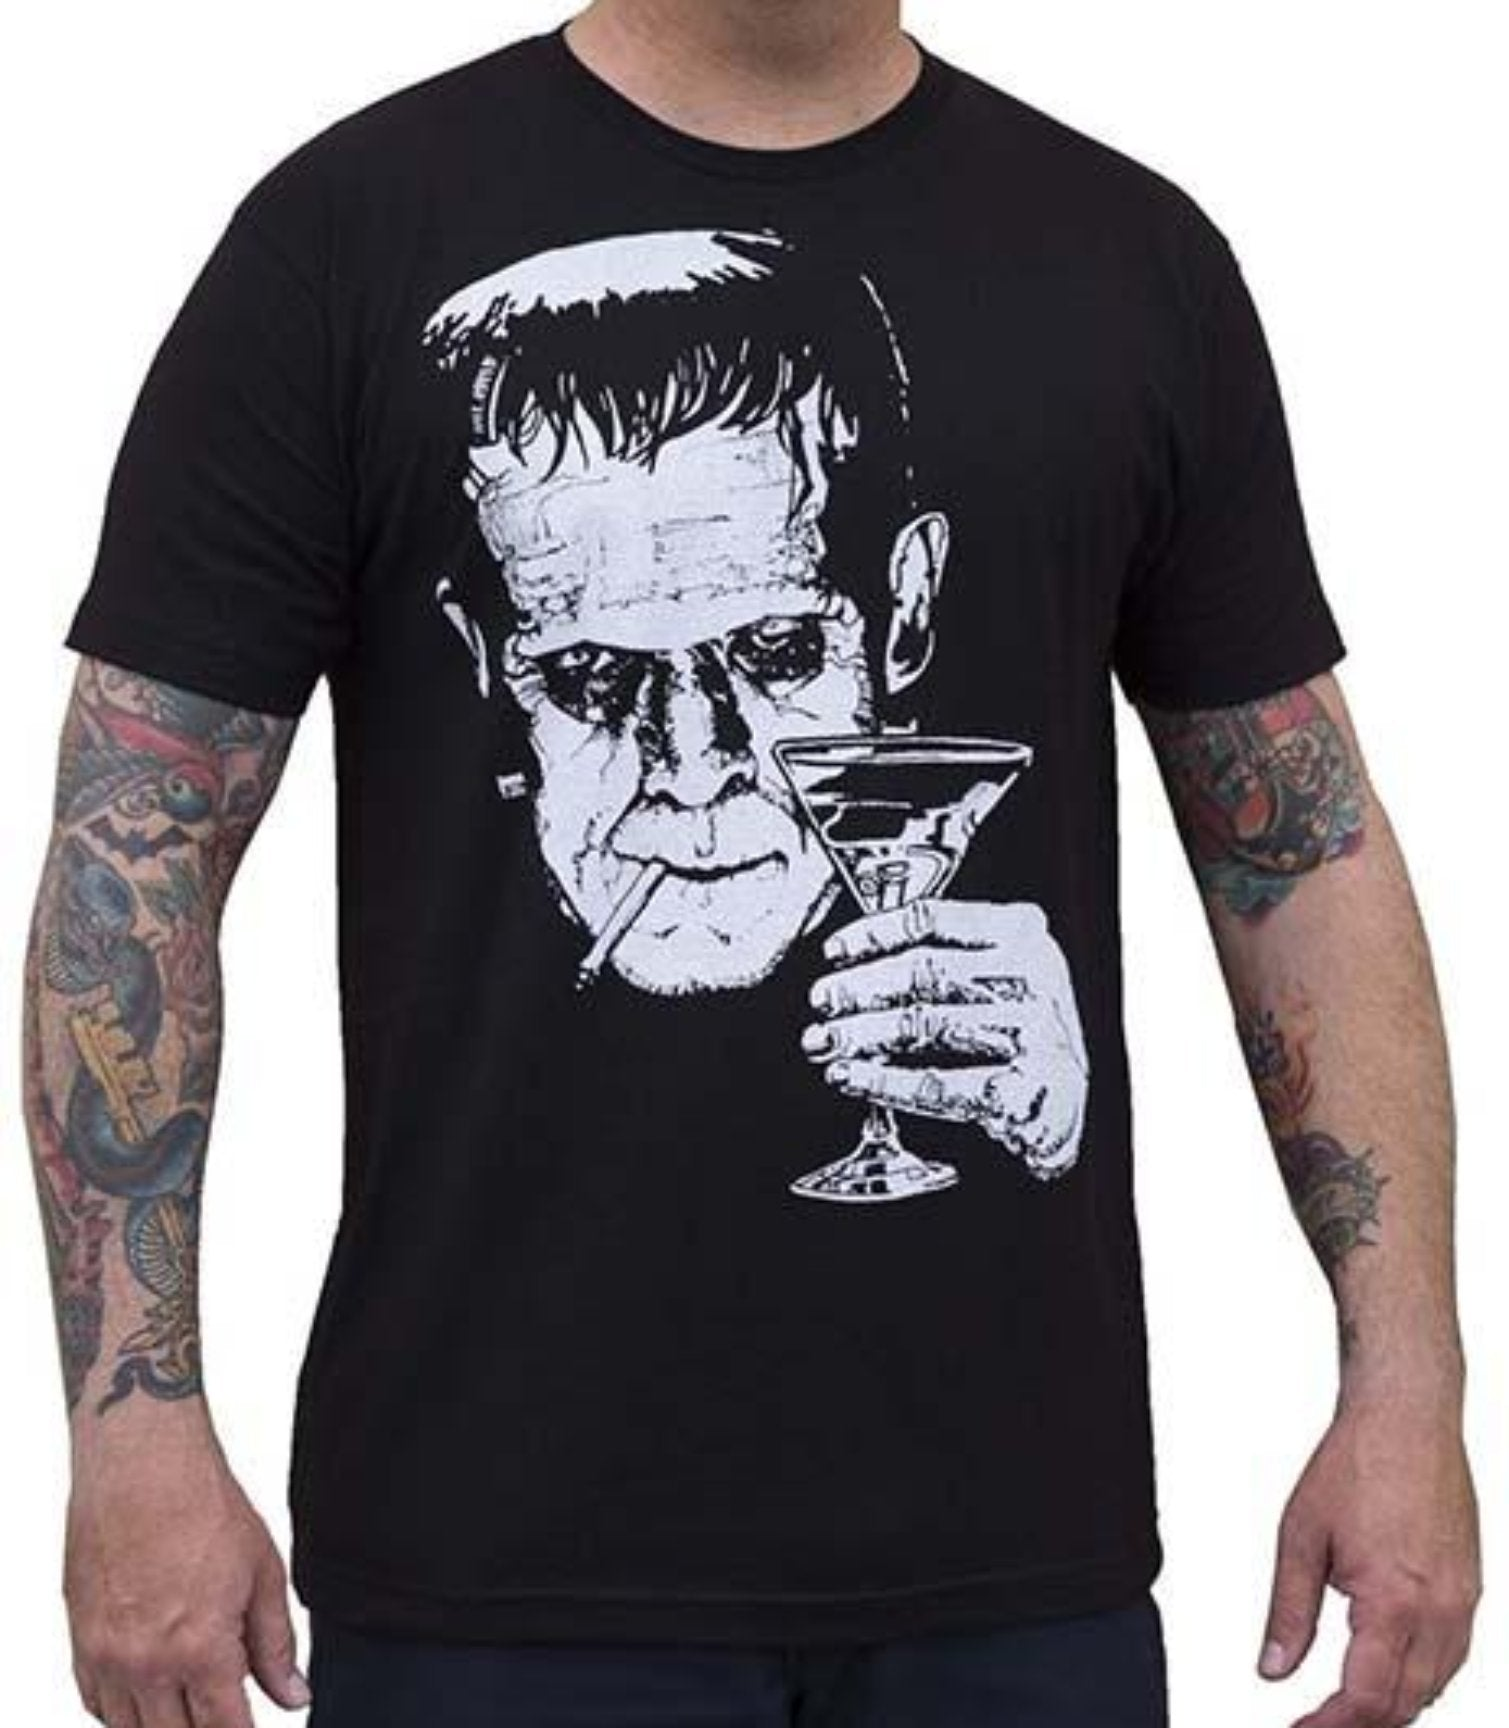 The MONSTER MARTINI Tee